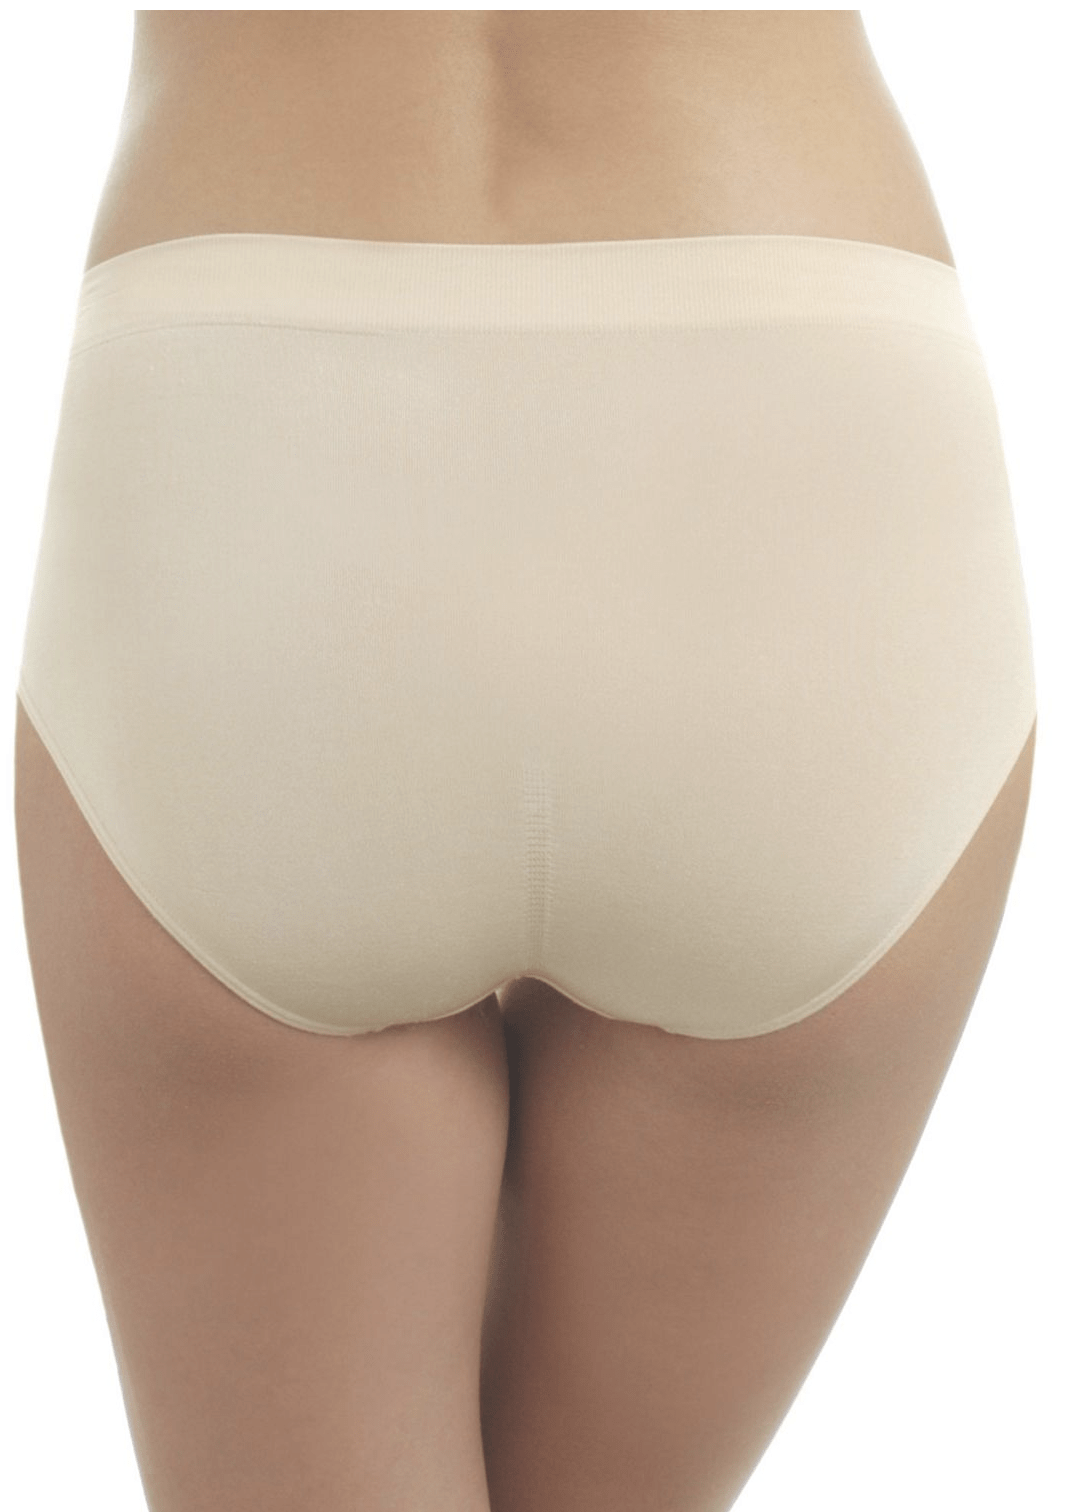 Wacoal B-Smooth Seamless Hi-Cut Panties 834175 Panties Wacoal